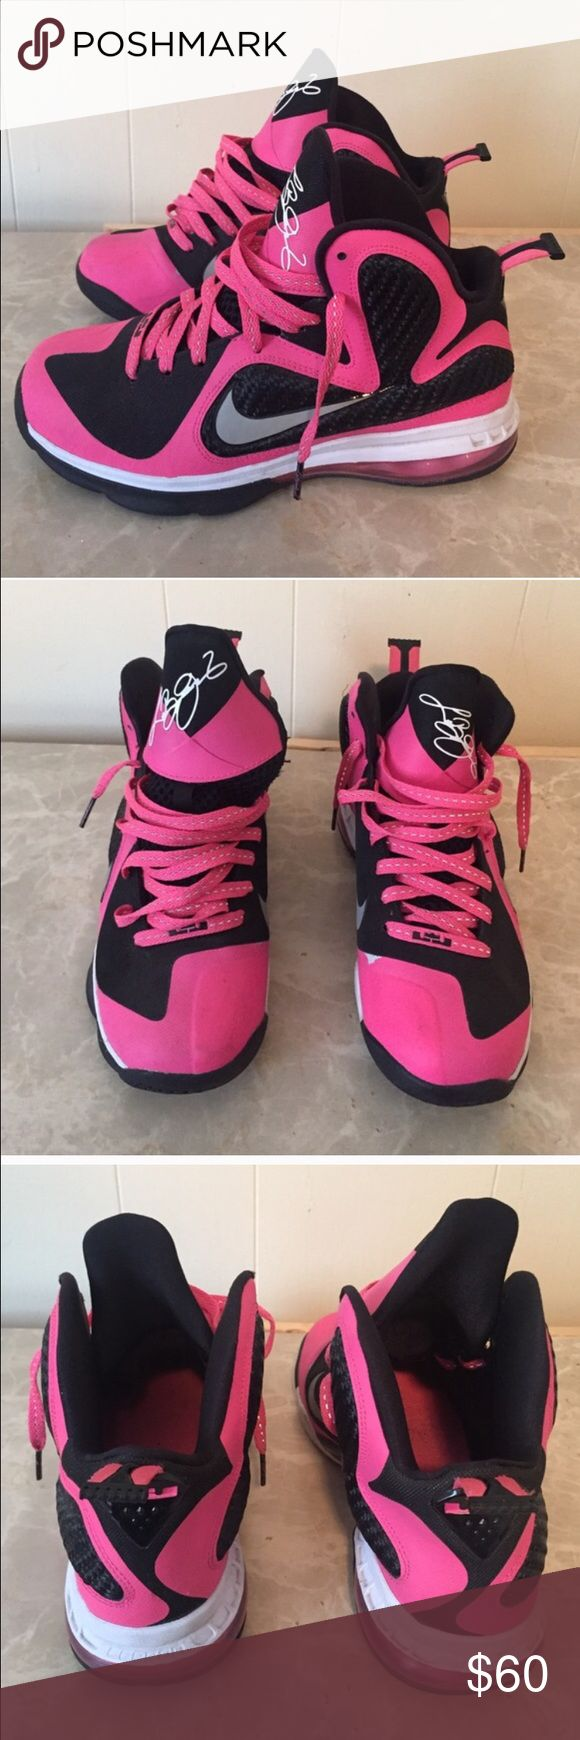 Pink Lebron 9s Pink Lebron 9s Size 6Y. Good condition (8/10) Nike Shoes Sneakers